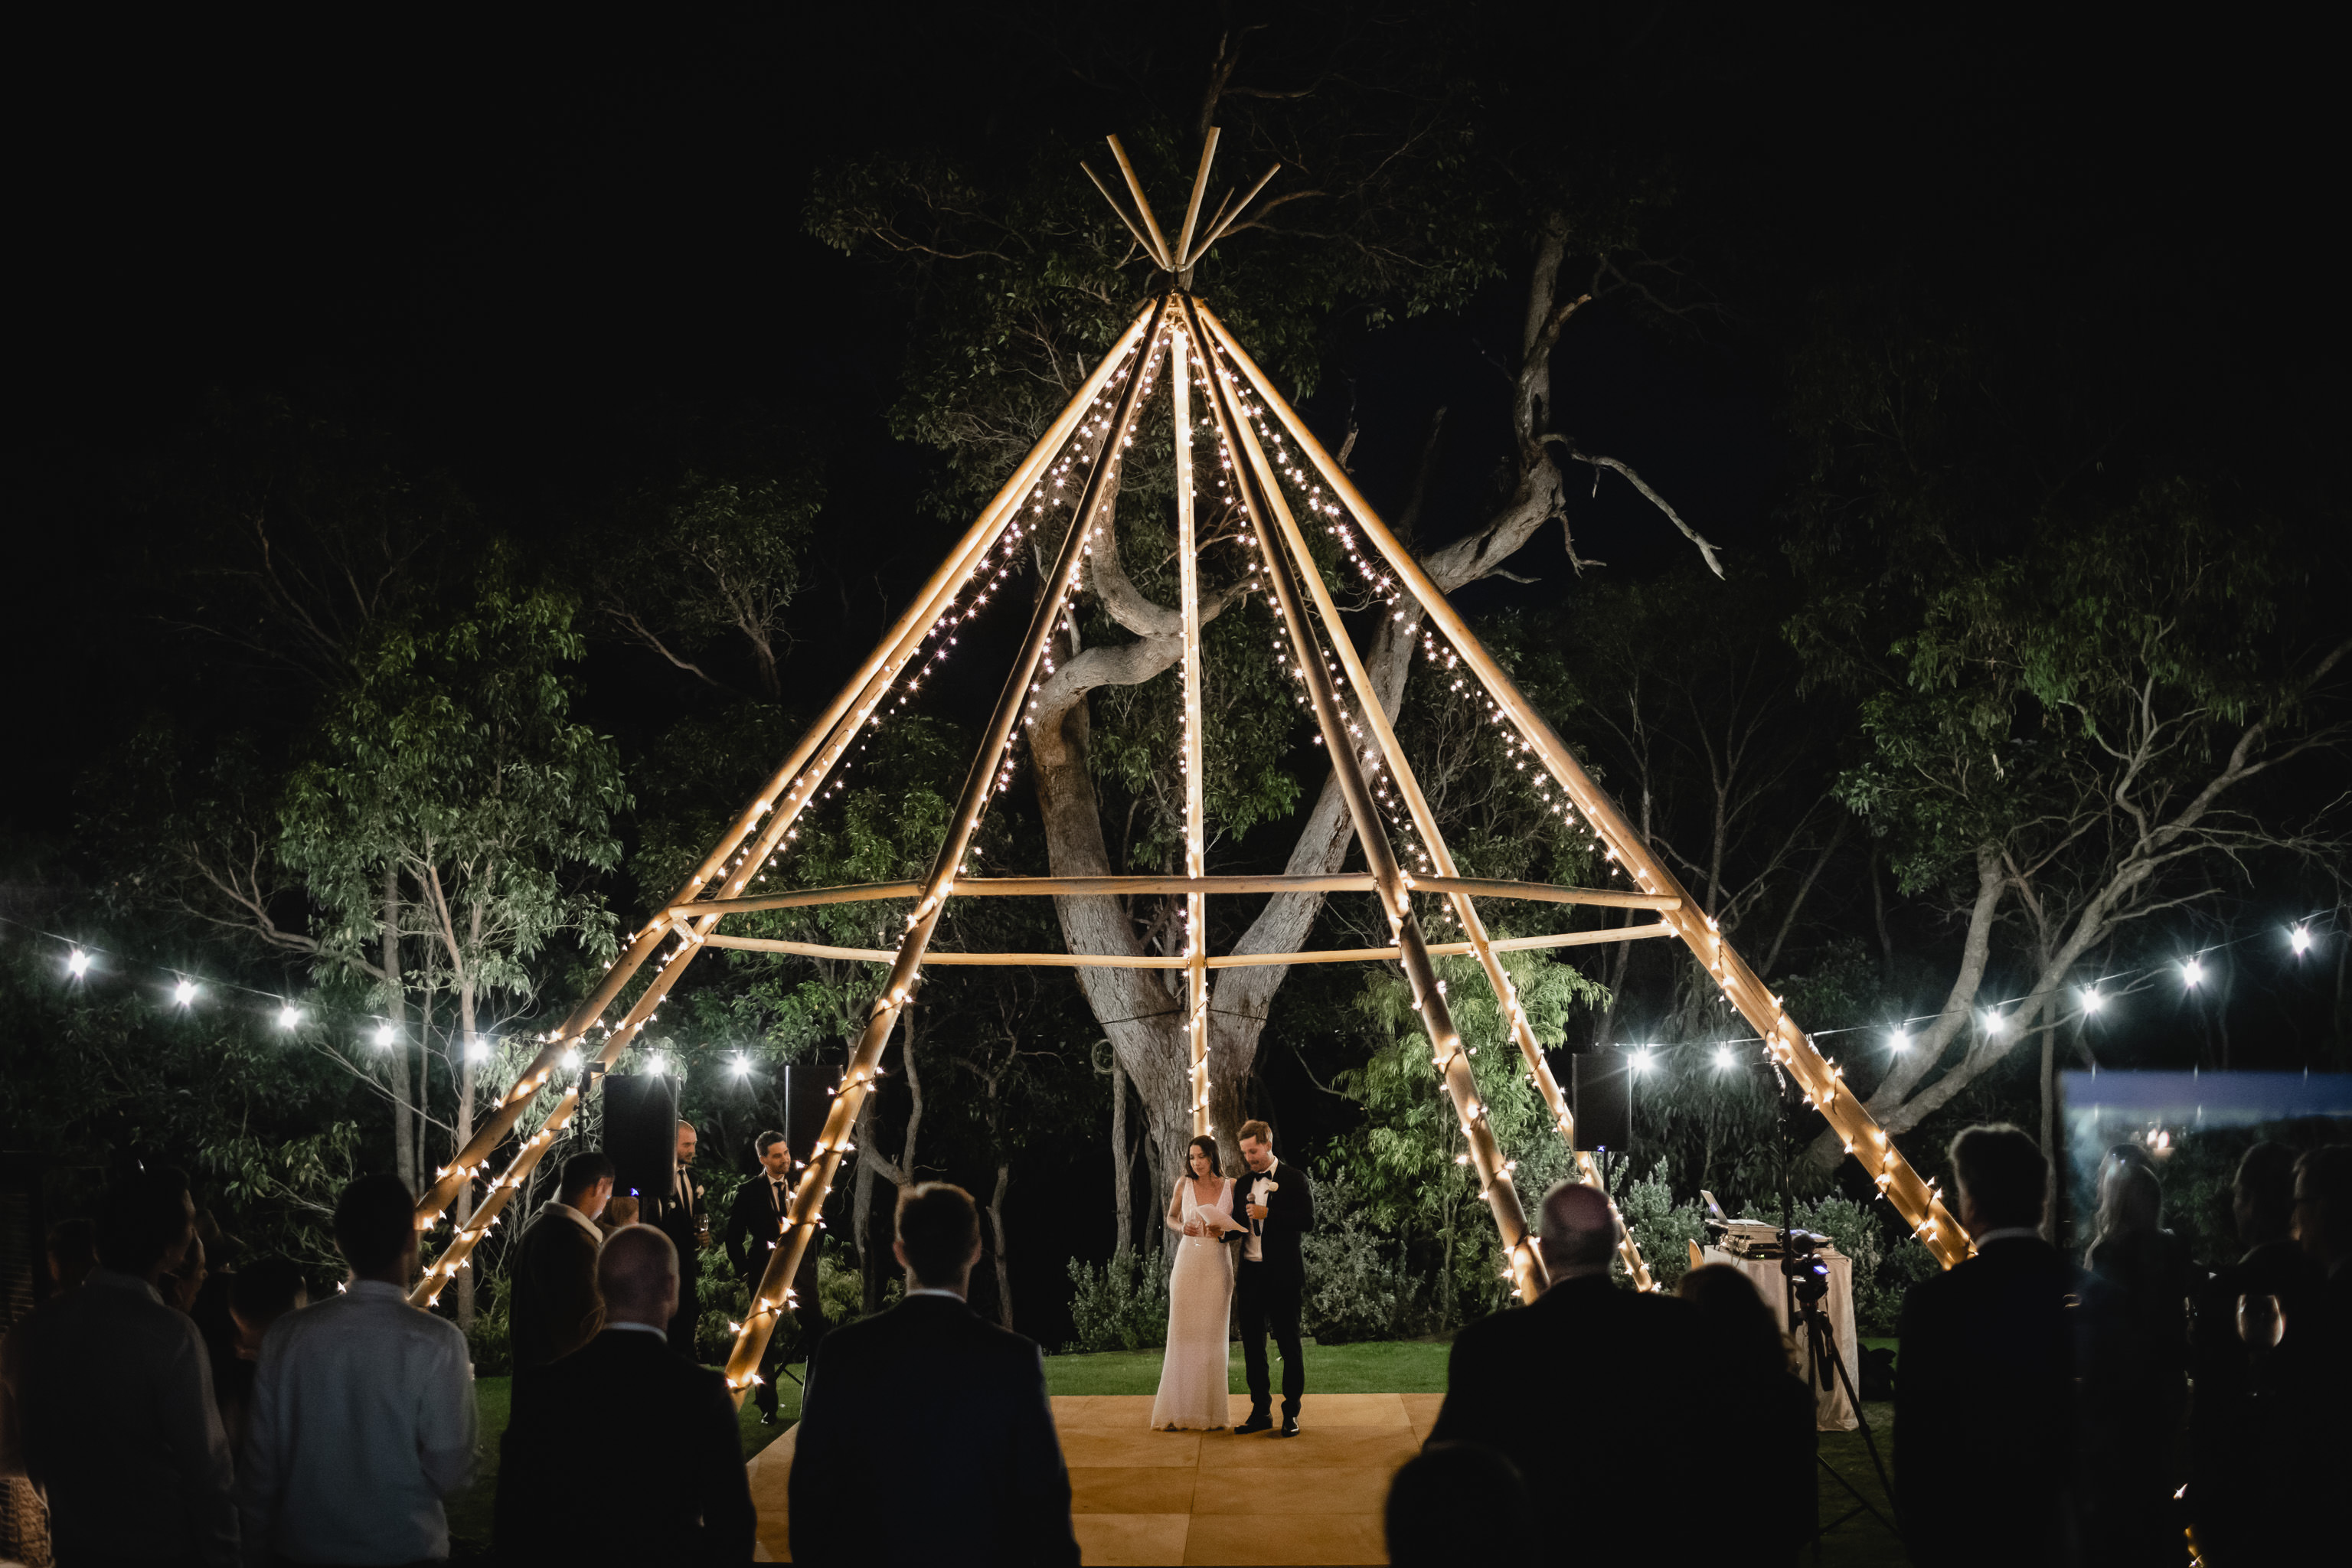 Bride and groom standing under giant tipi covered in festoon lights at their wedding at Meelup Farmhouse